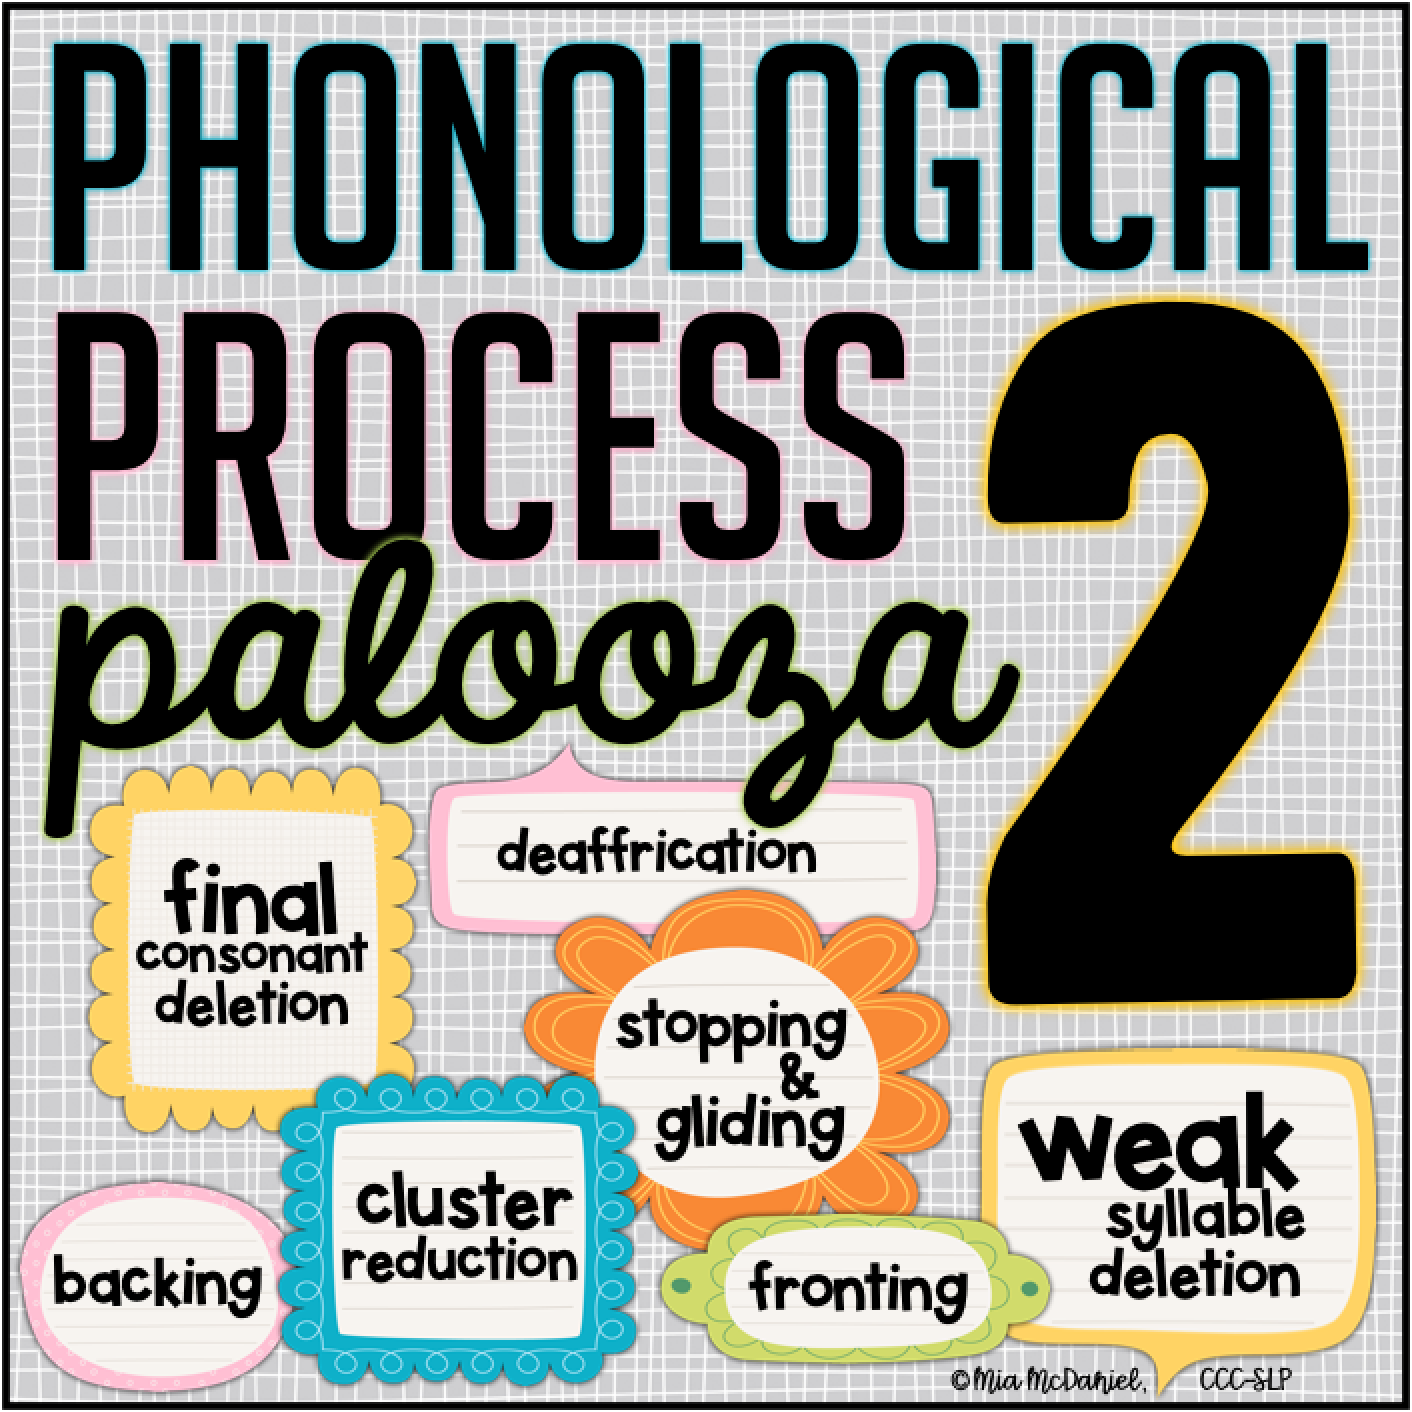 Phonoloogical Process Palooza 2